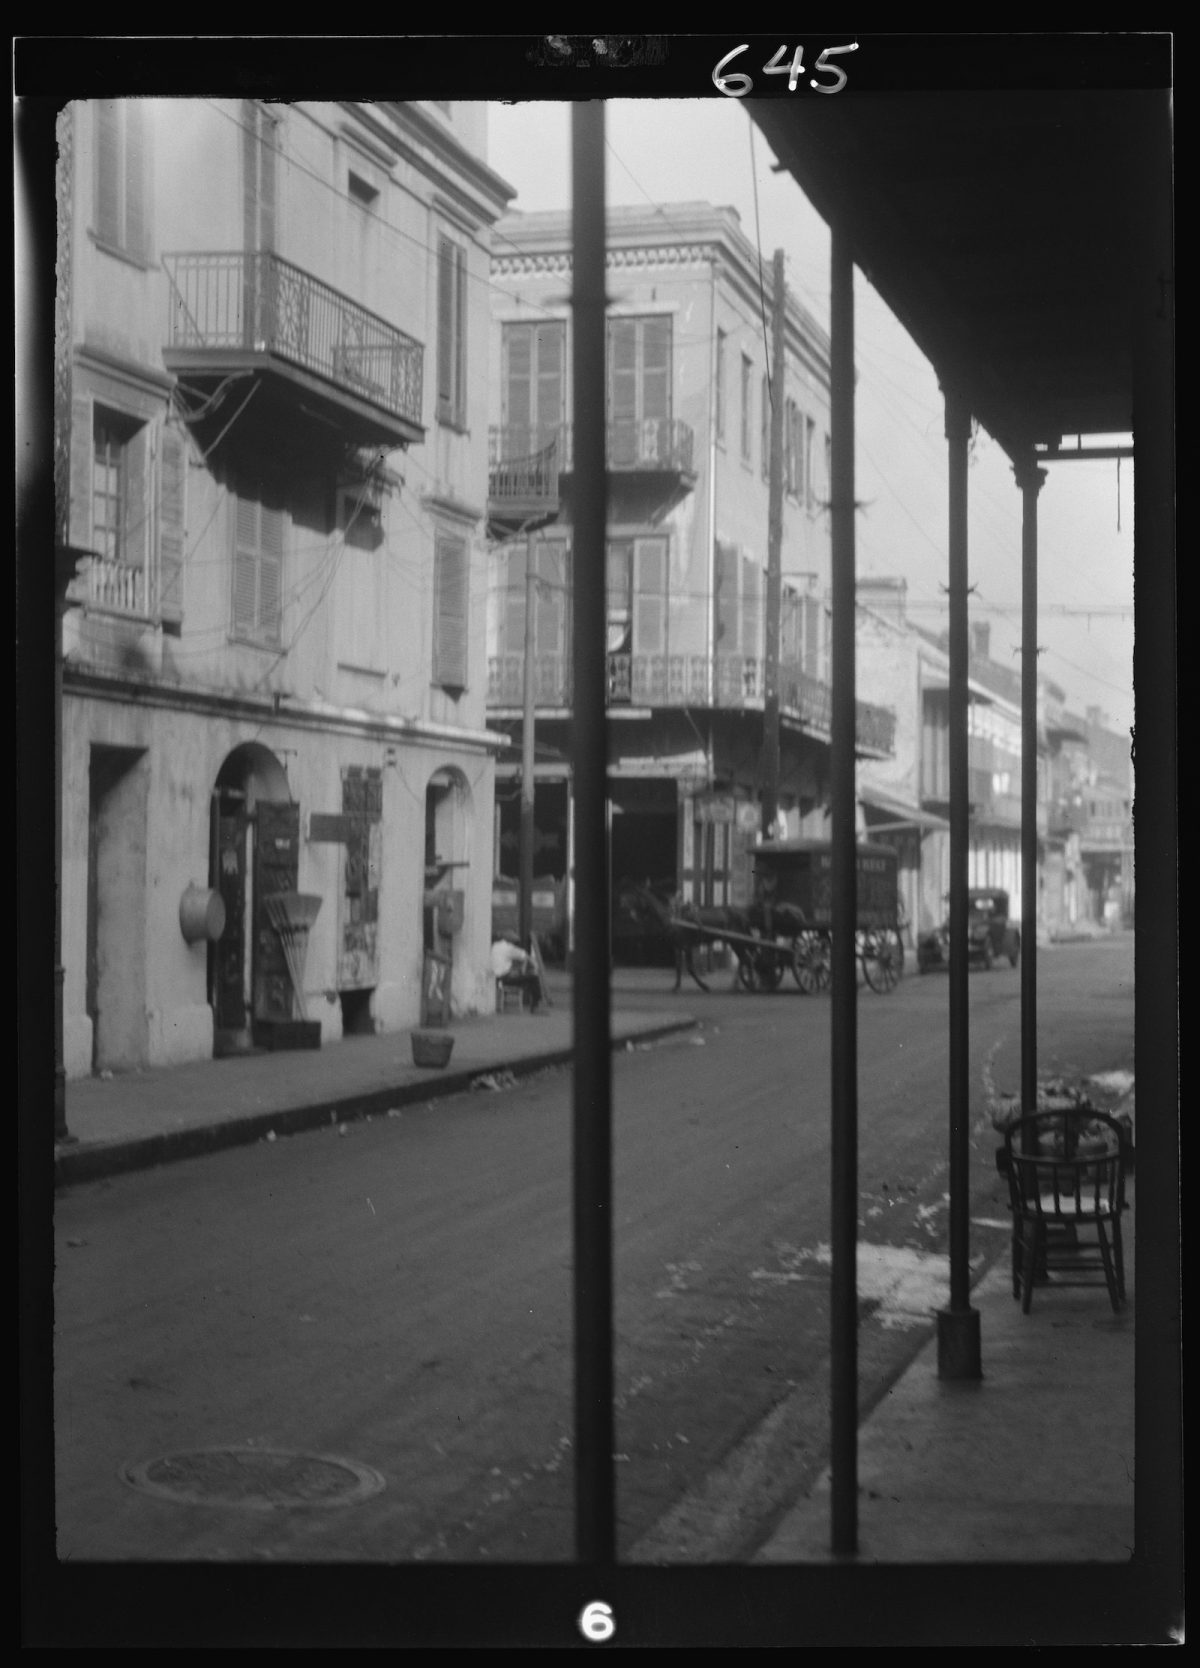 Arnold Genthe, New Orleans, photography